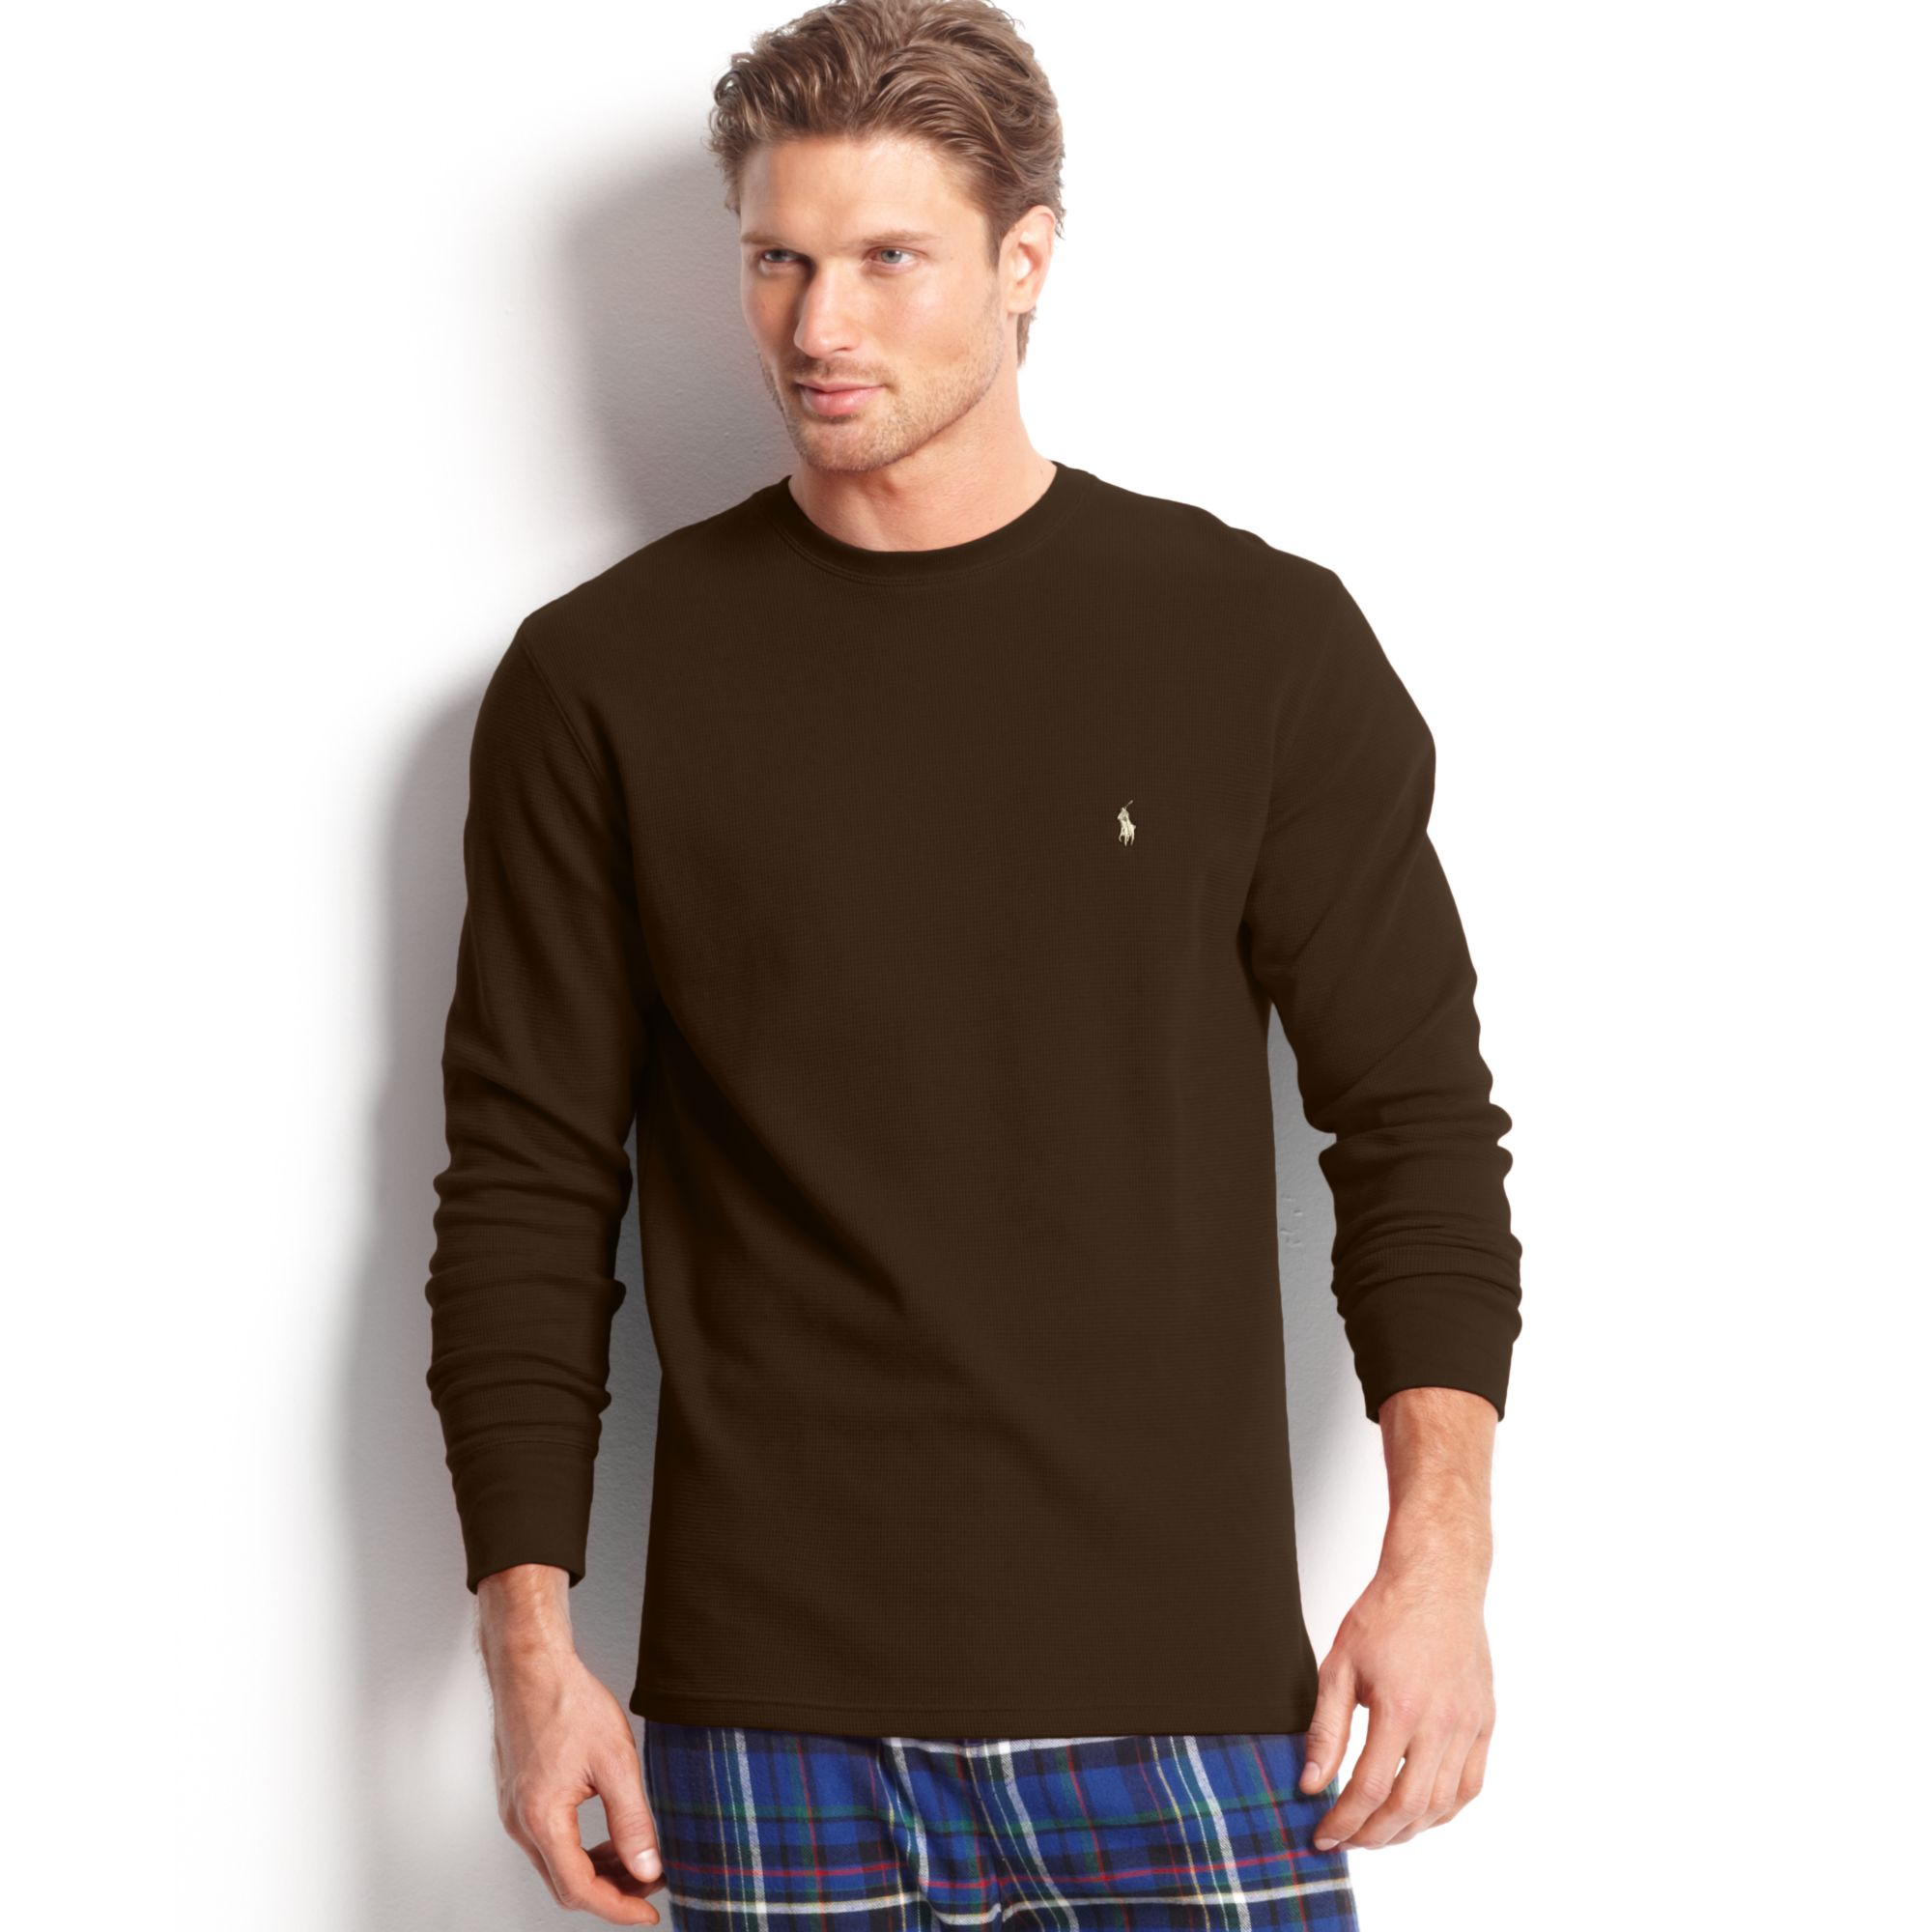 0dd00c81b96ab Lyst - Ralph Lauren Long Sleeve Crew Neck Waffleknit Thermal Tshirt ...